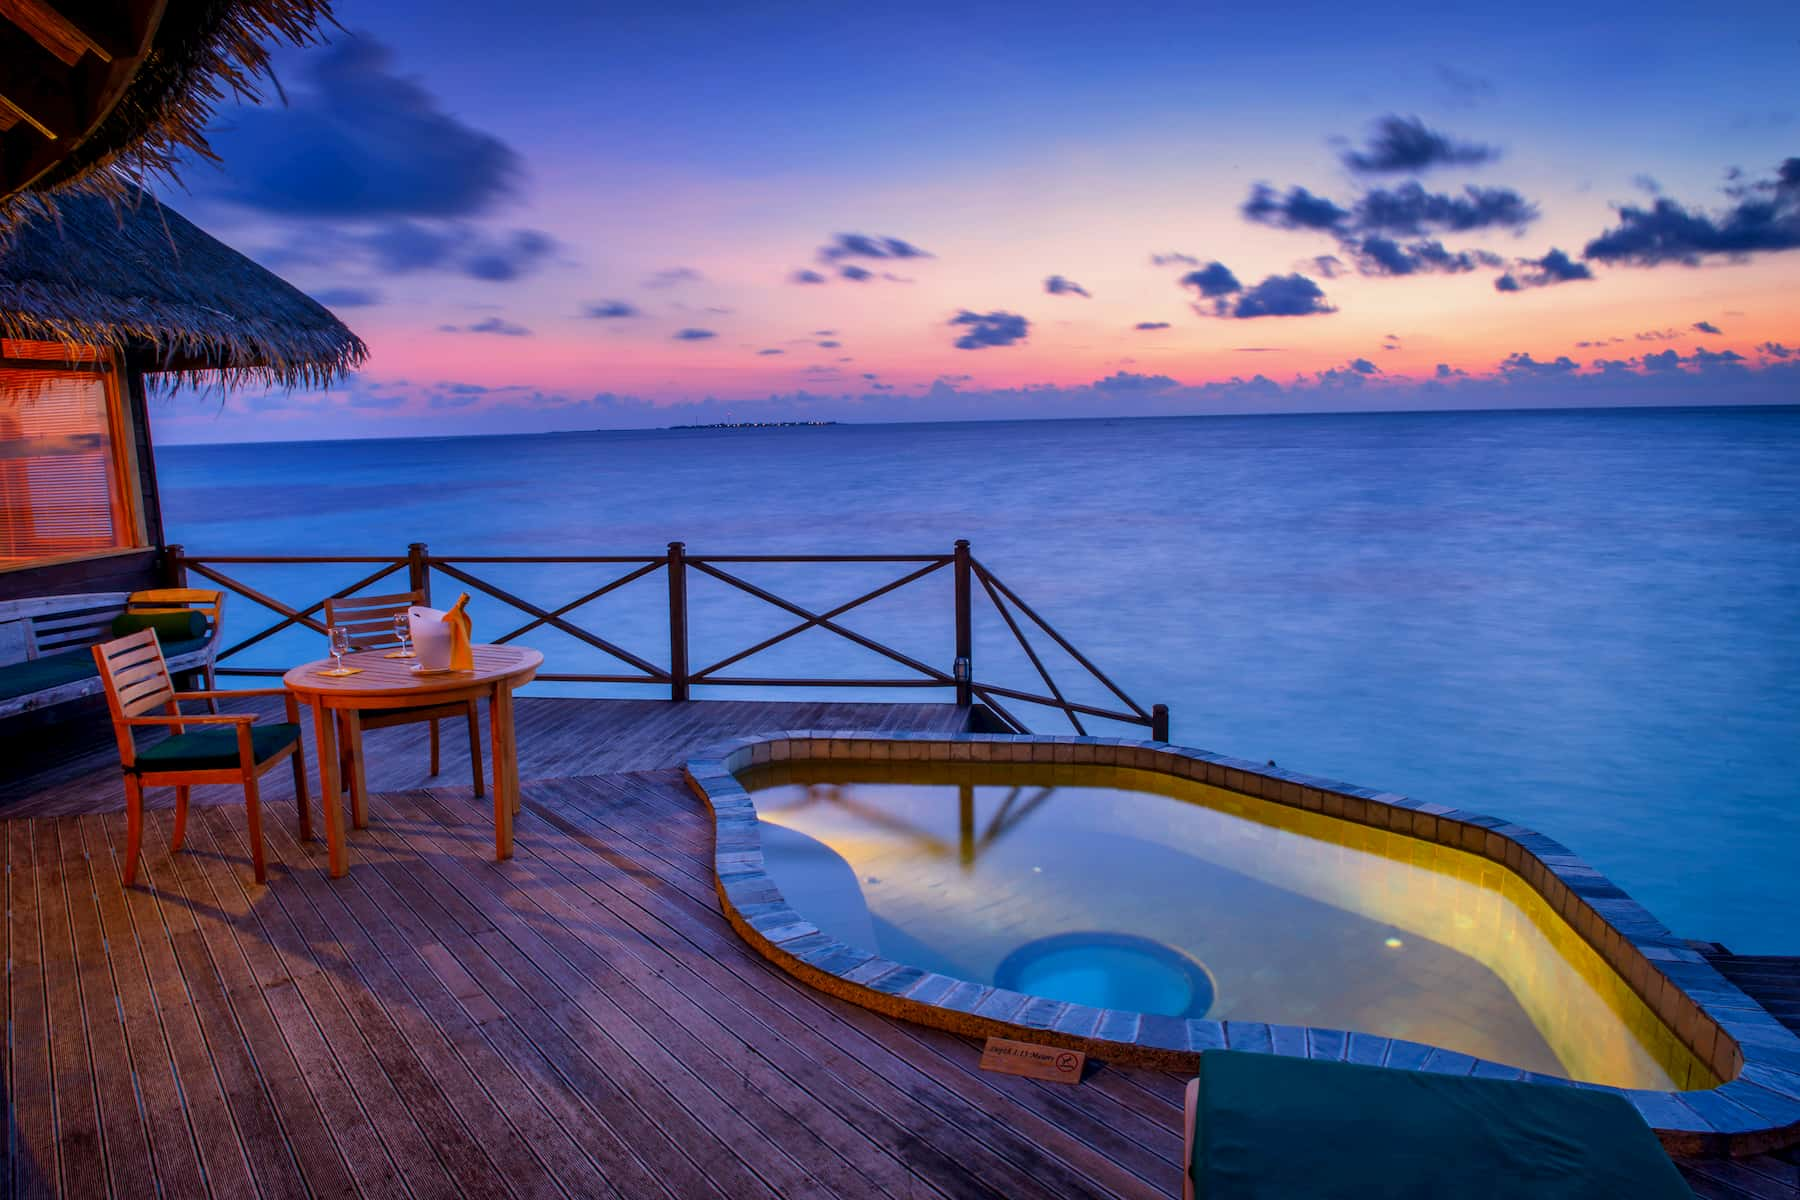 Coco Palm Dhuni Kolhu resort Maldive sunset lagoon villa